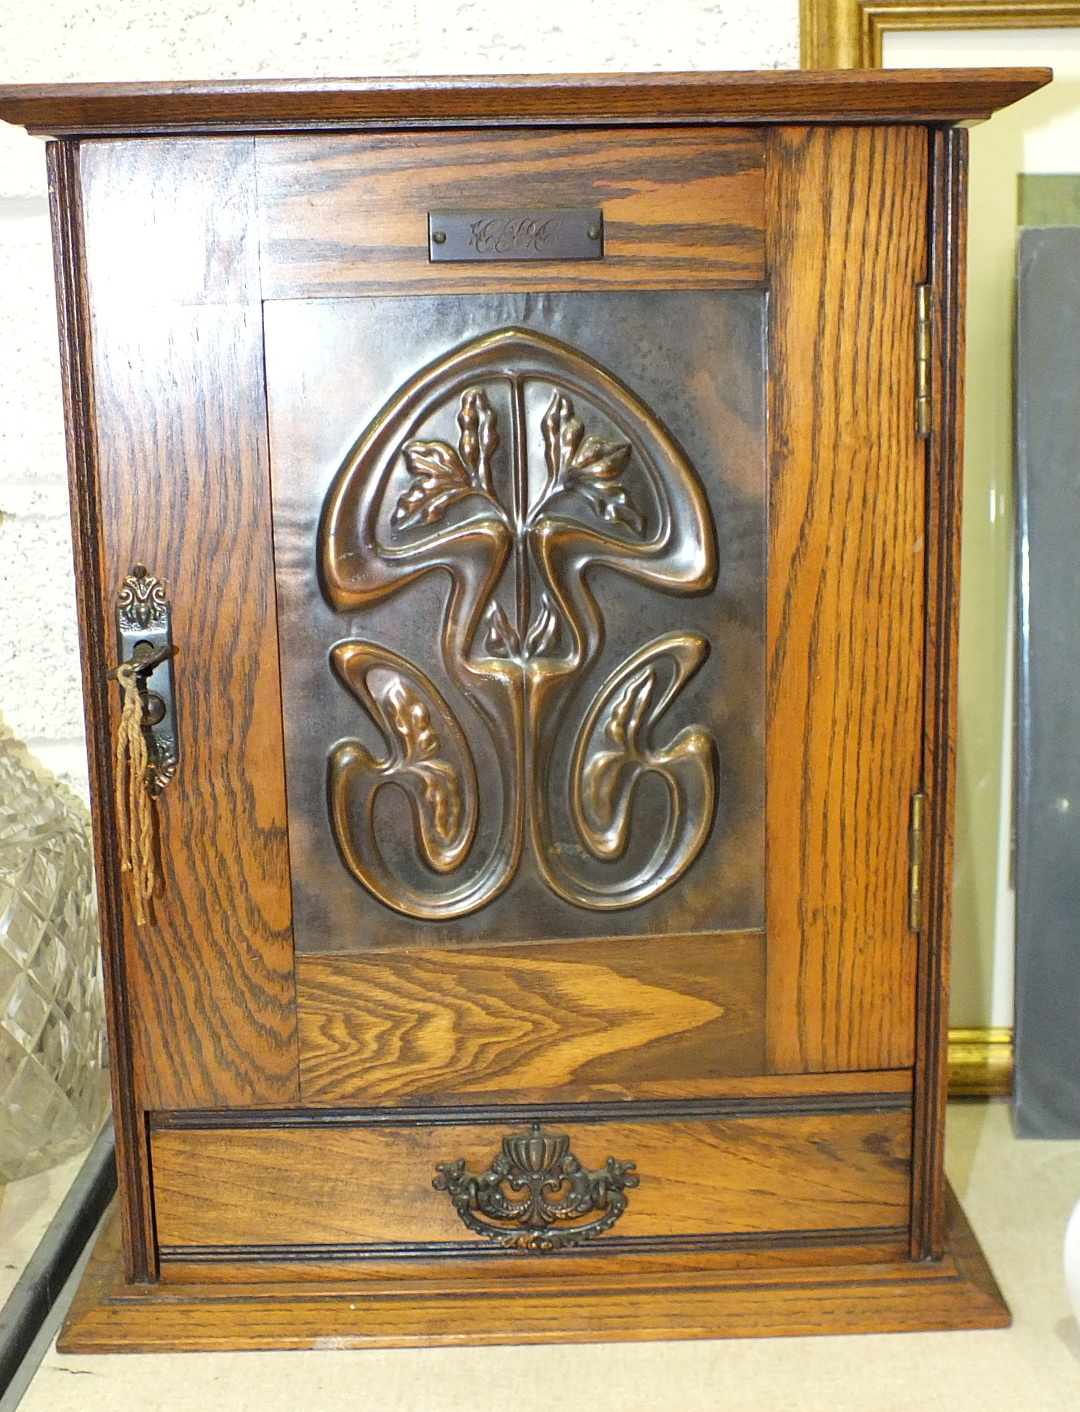 A smoker's small compendium cabinet, the door with Art Nouveau-style copper panel enclosing a fitted